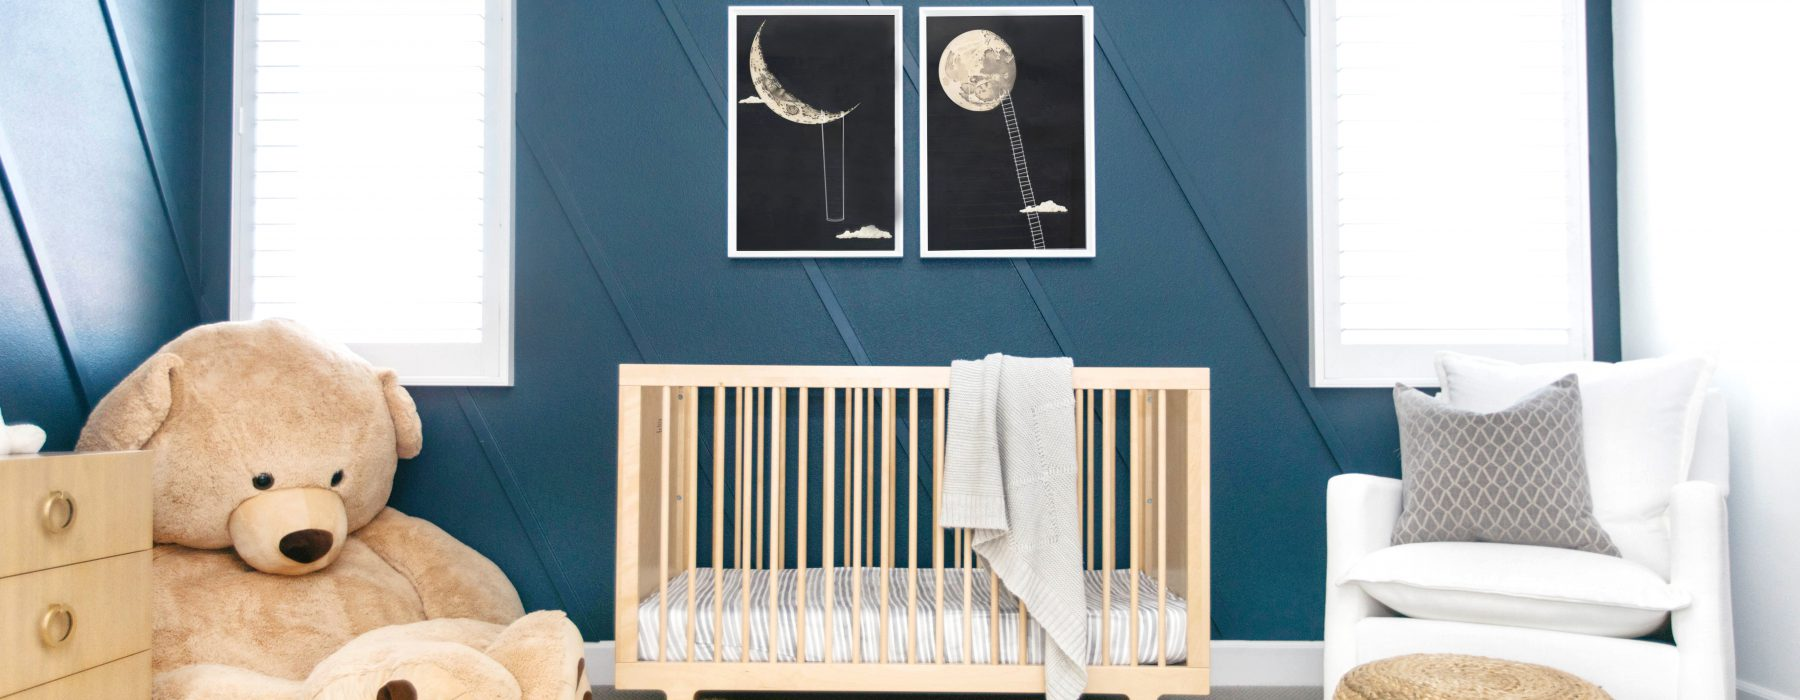 How To Choose The Perfect Crib For Your Nursery